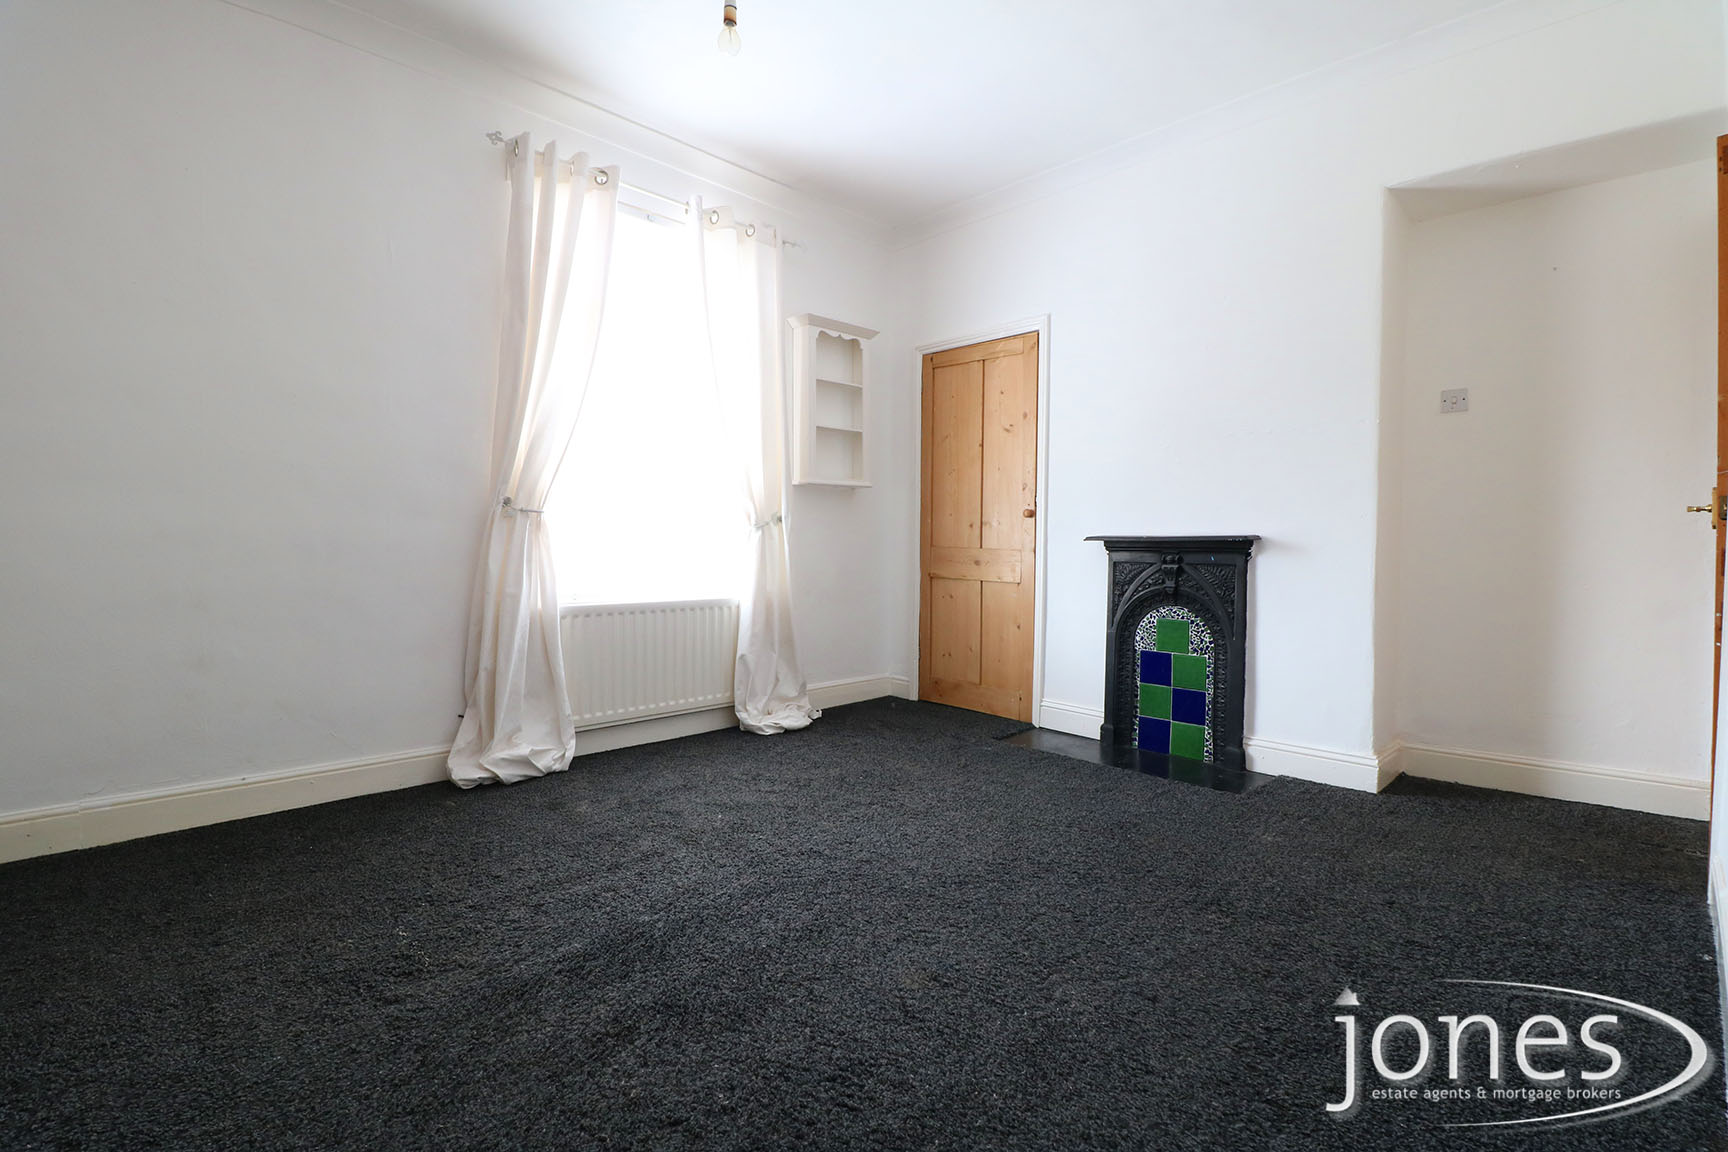 Home for Sale Let - Photo 12 Station Road Norton Stockton on Tees TS20 1PE